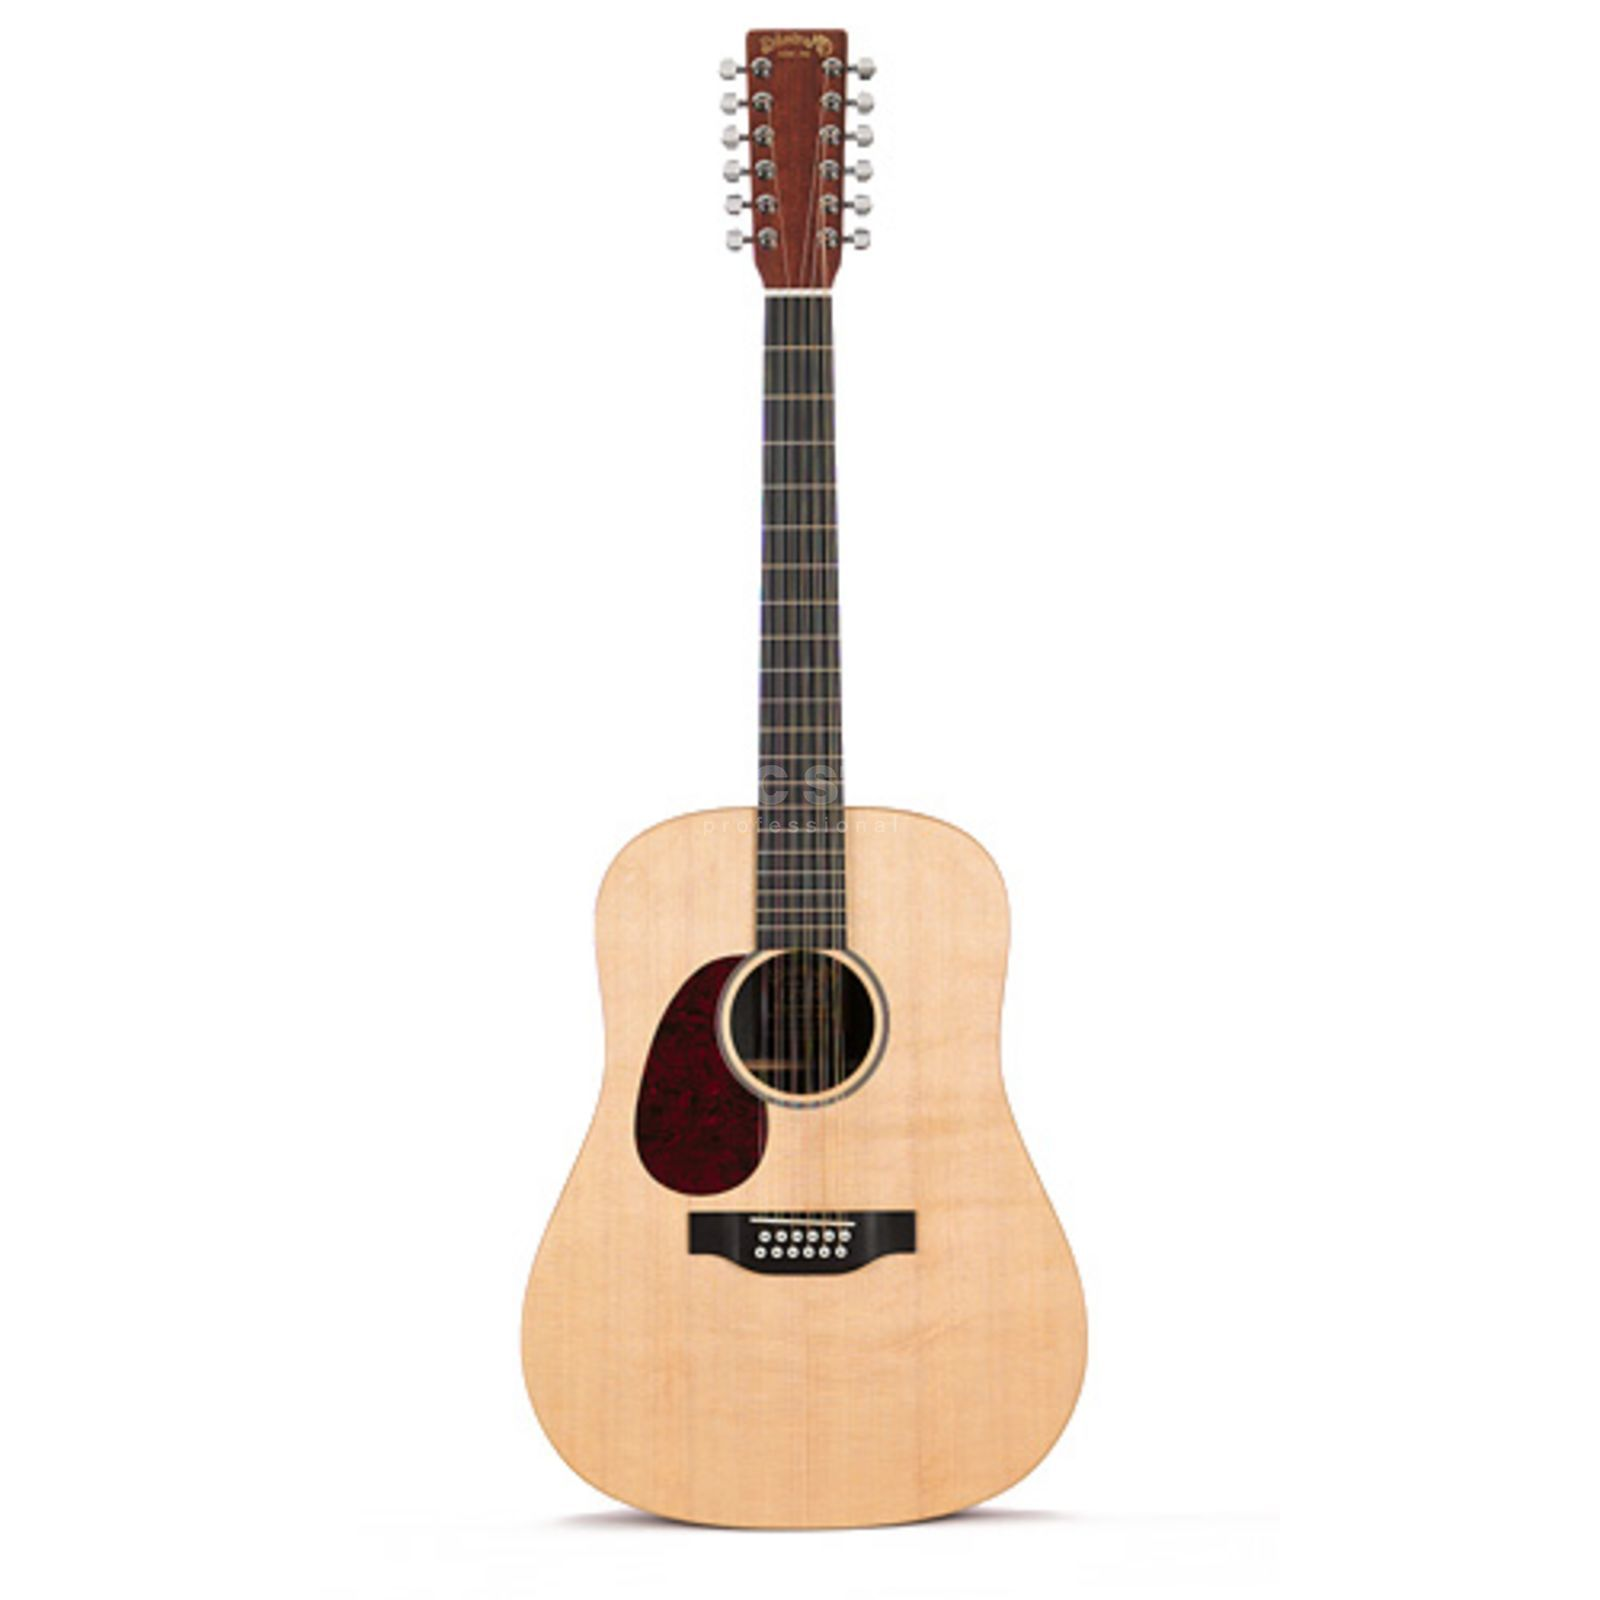 Martin Guitars D12X1AE LH 12-string Lefthand Fishman Sonitone Produktbillede